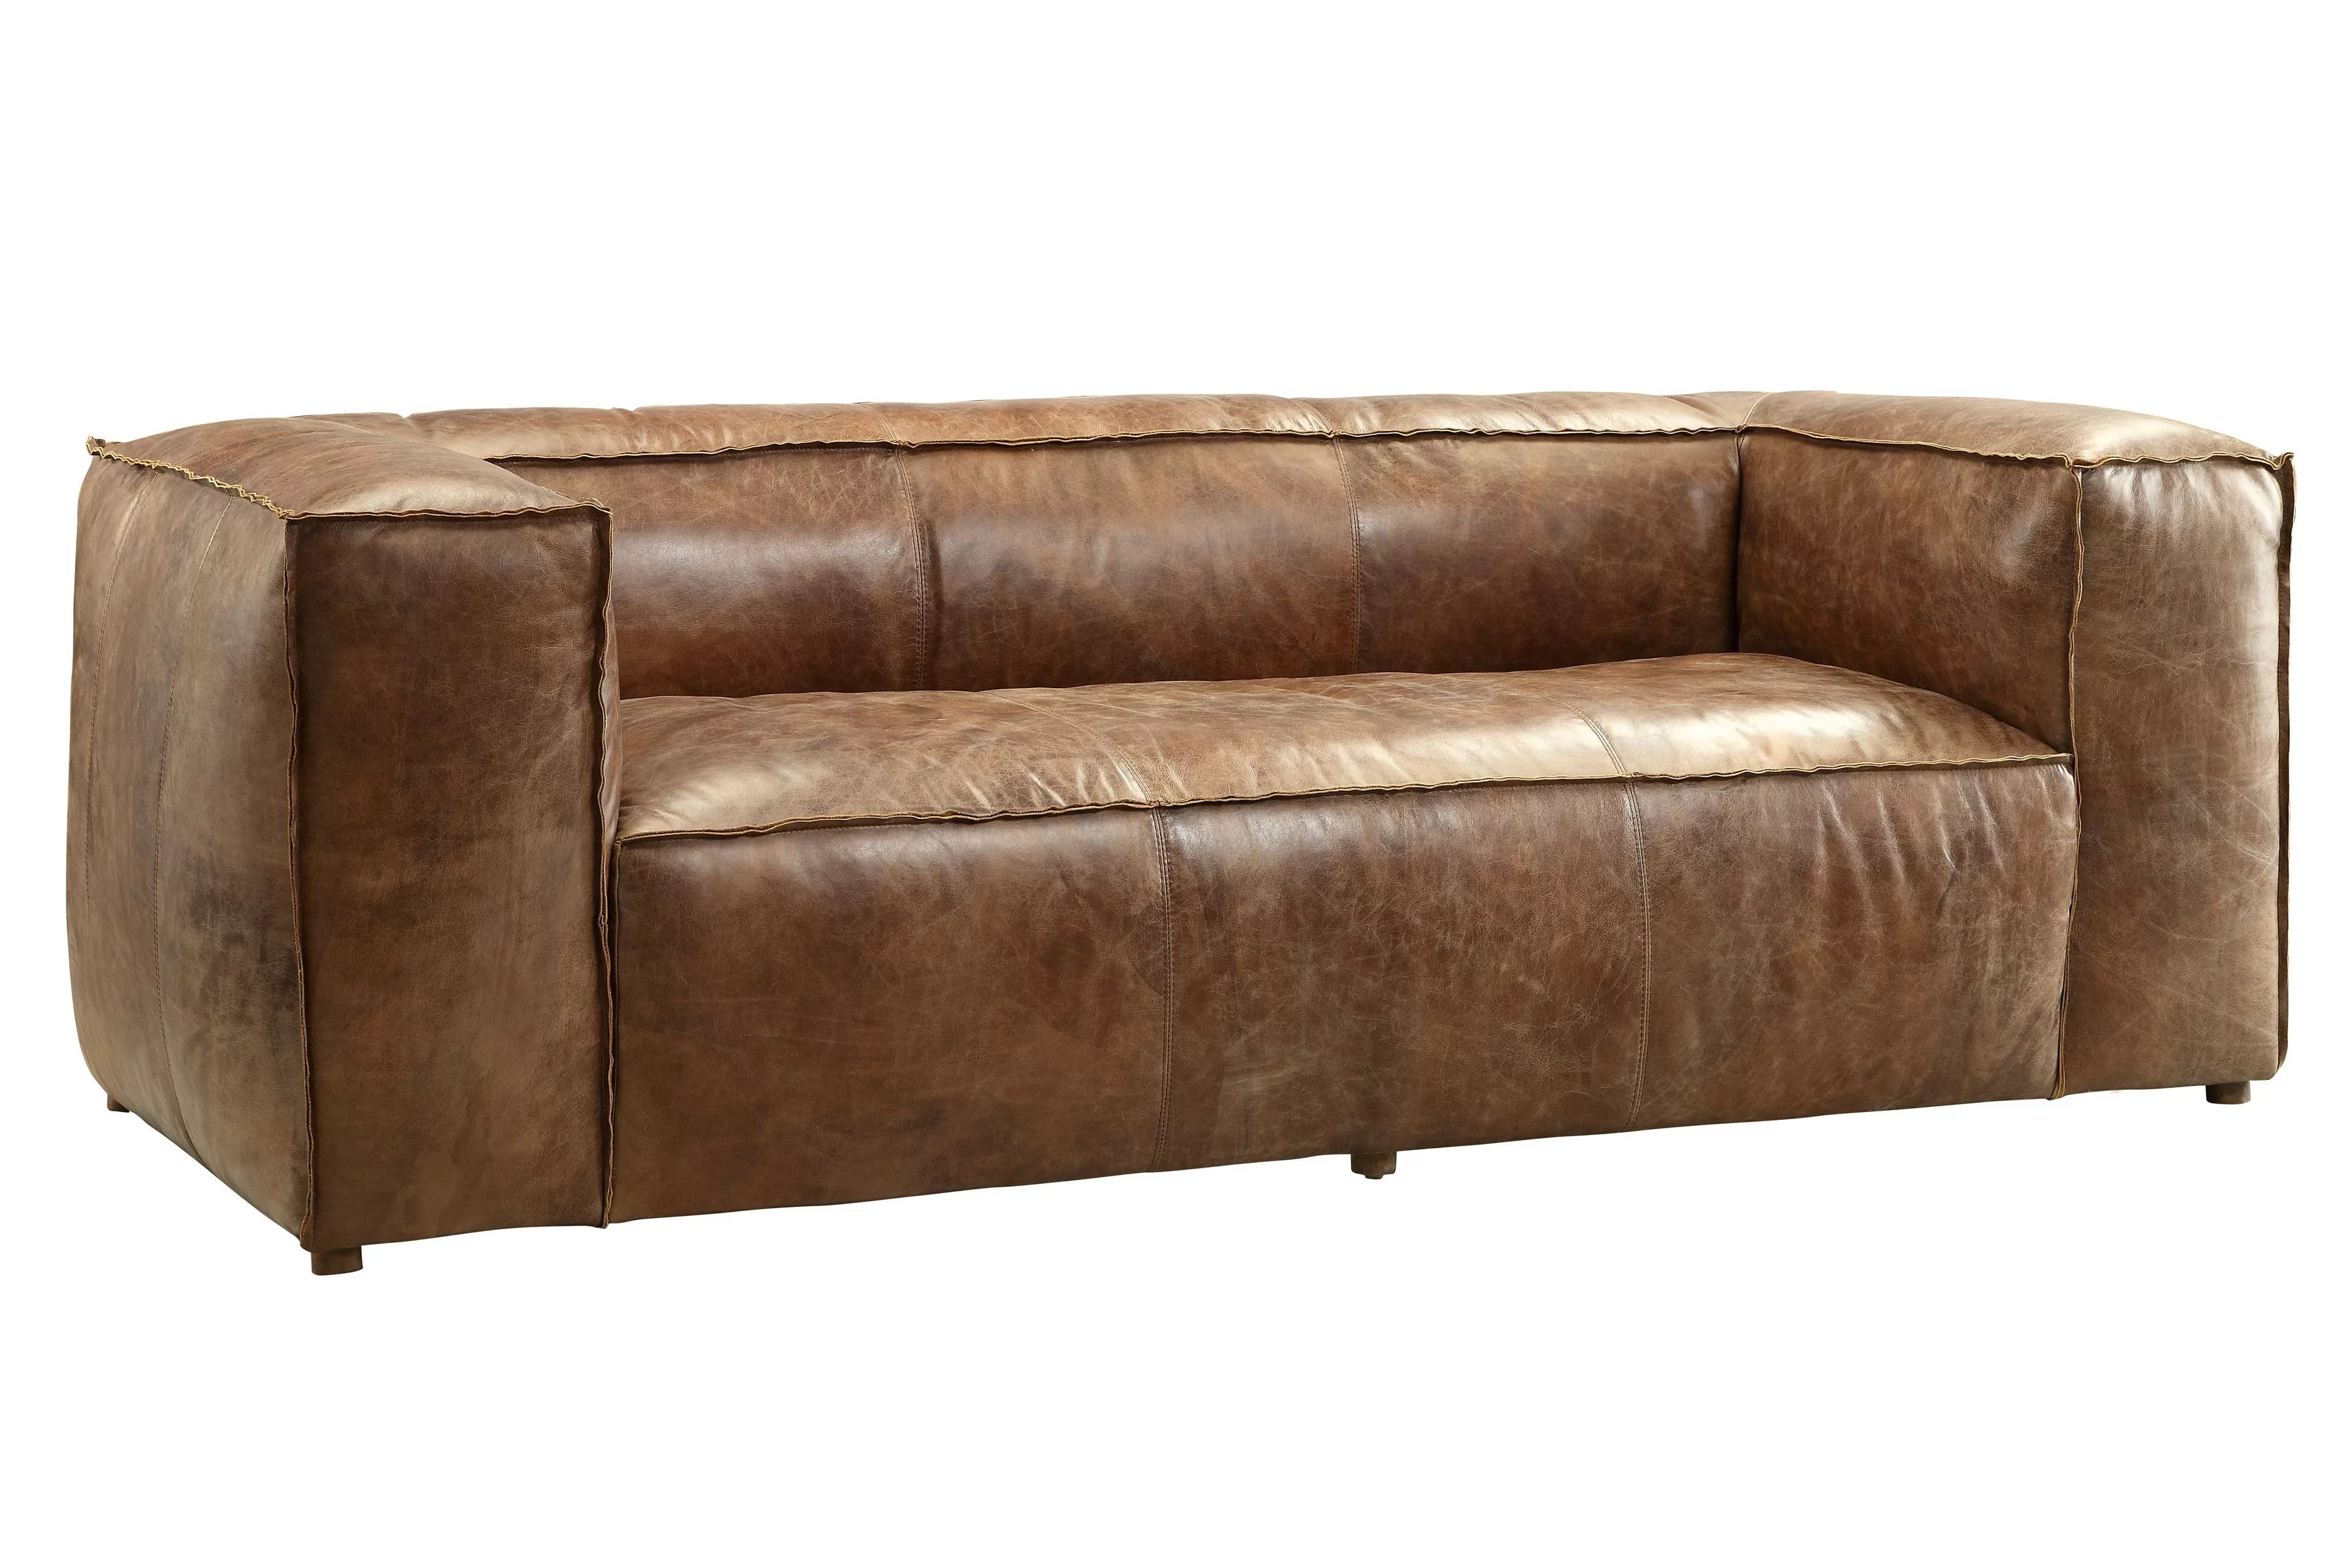 Brown Real Leather Couch Annessia Leather Sofa